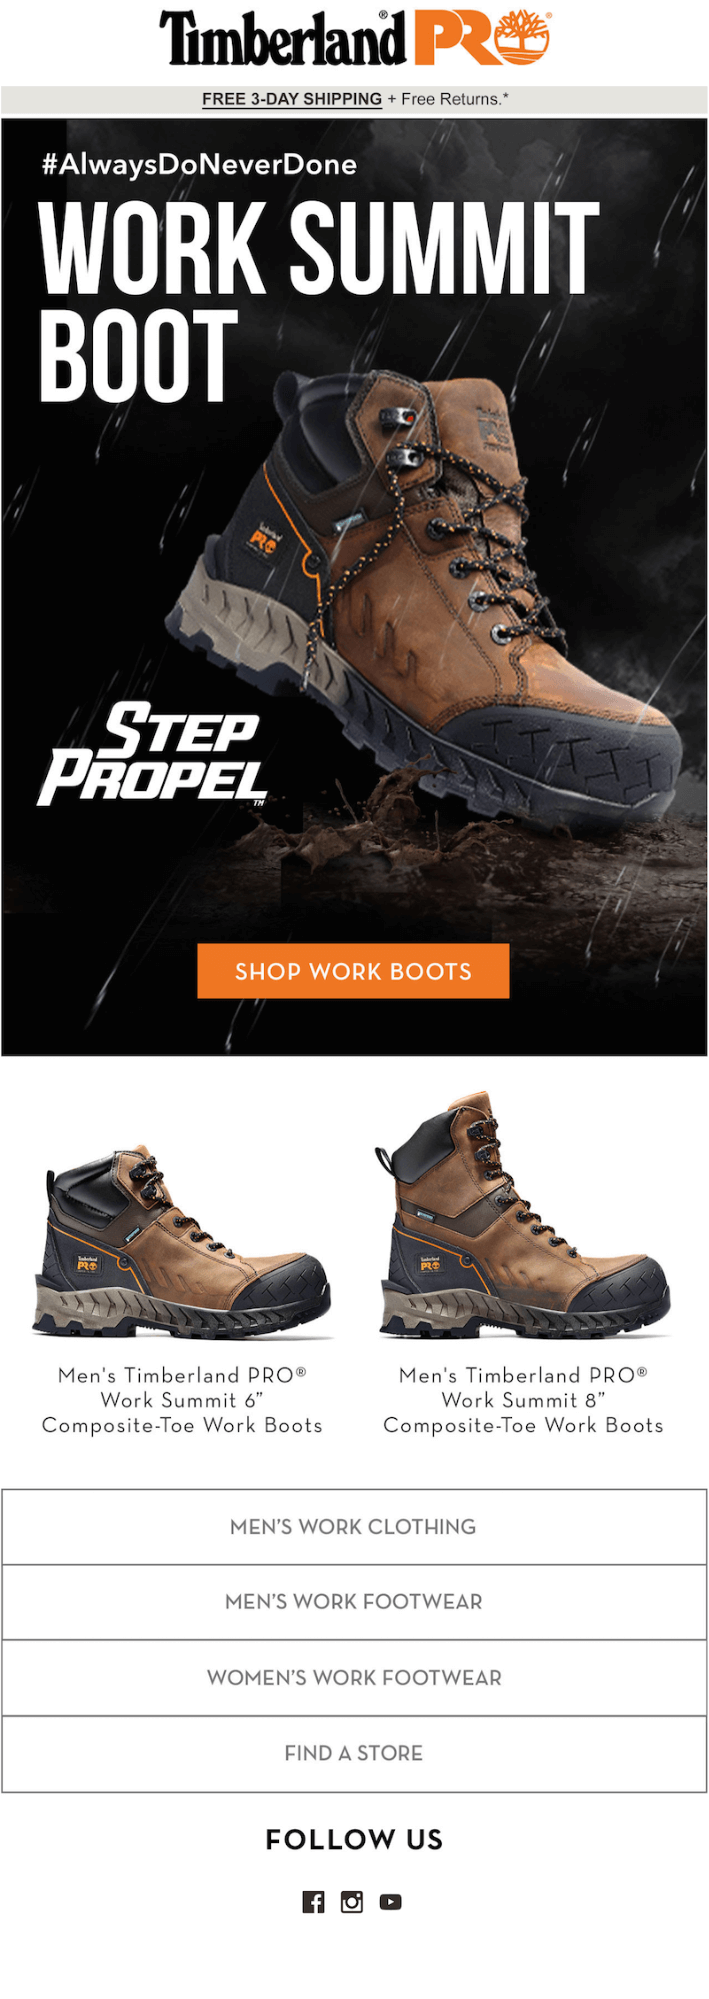 Timberland example of dynamic content in emails